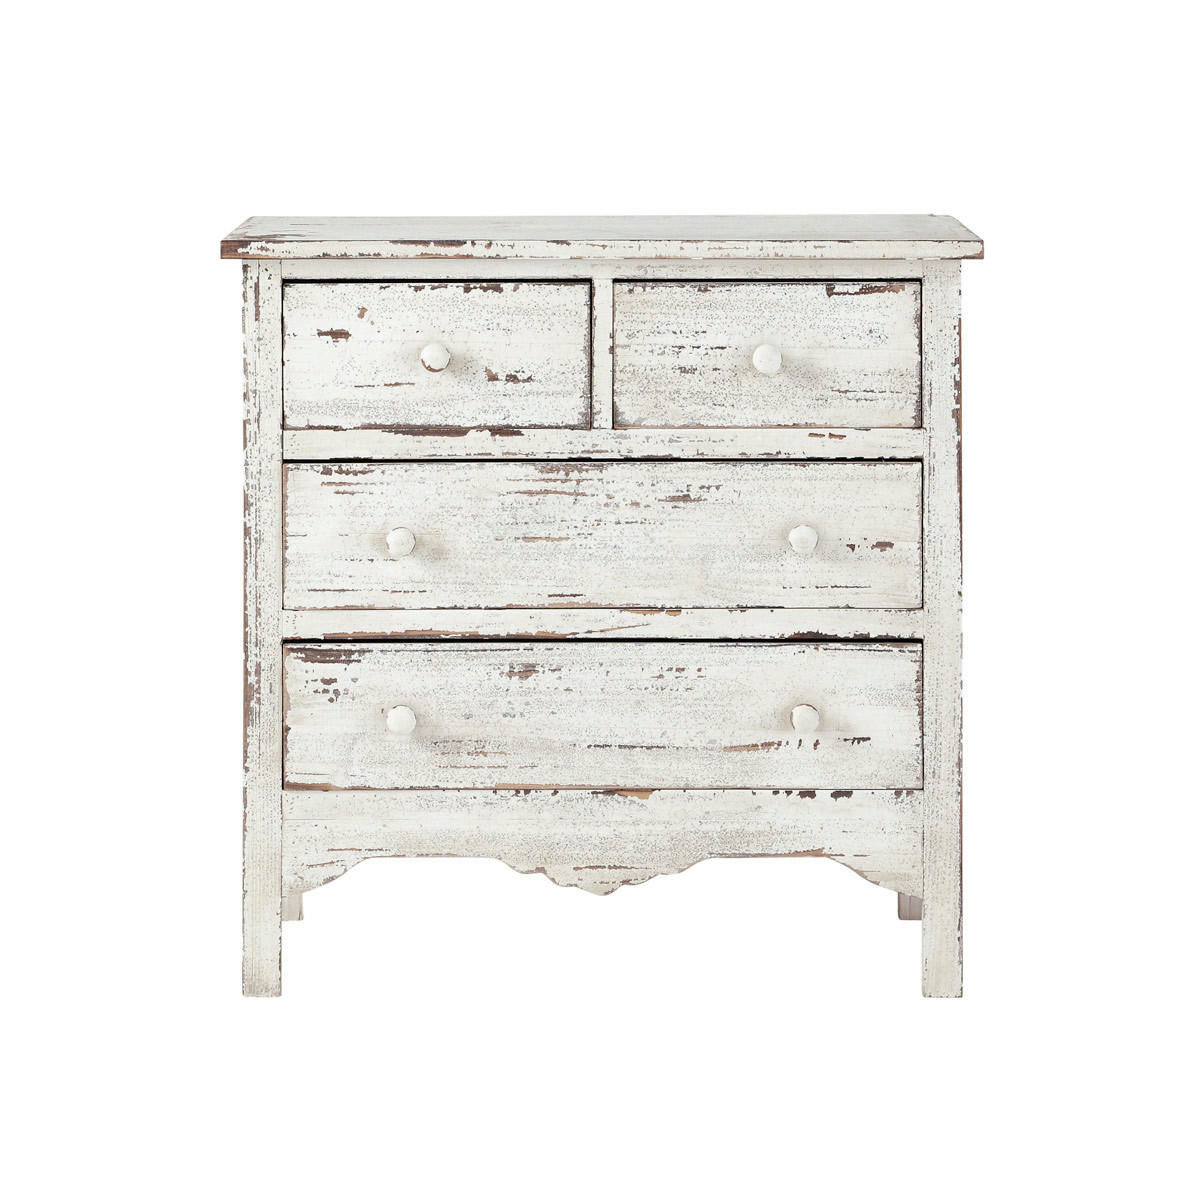 commode en bois blanche effet vieilli l 77 cm maisons du monde. Black Bedroom Furniture Sets. Home Design Ideas